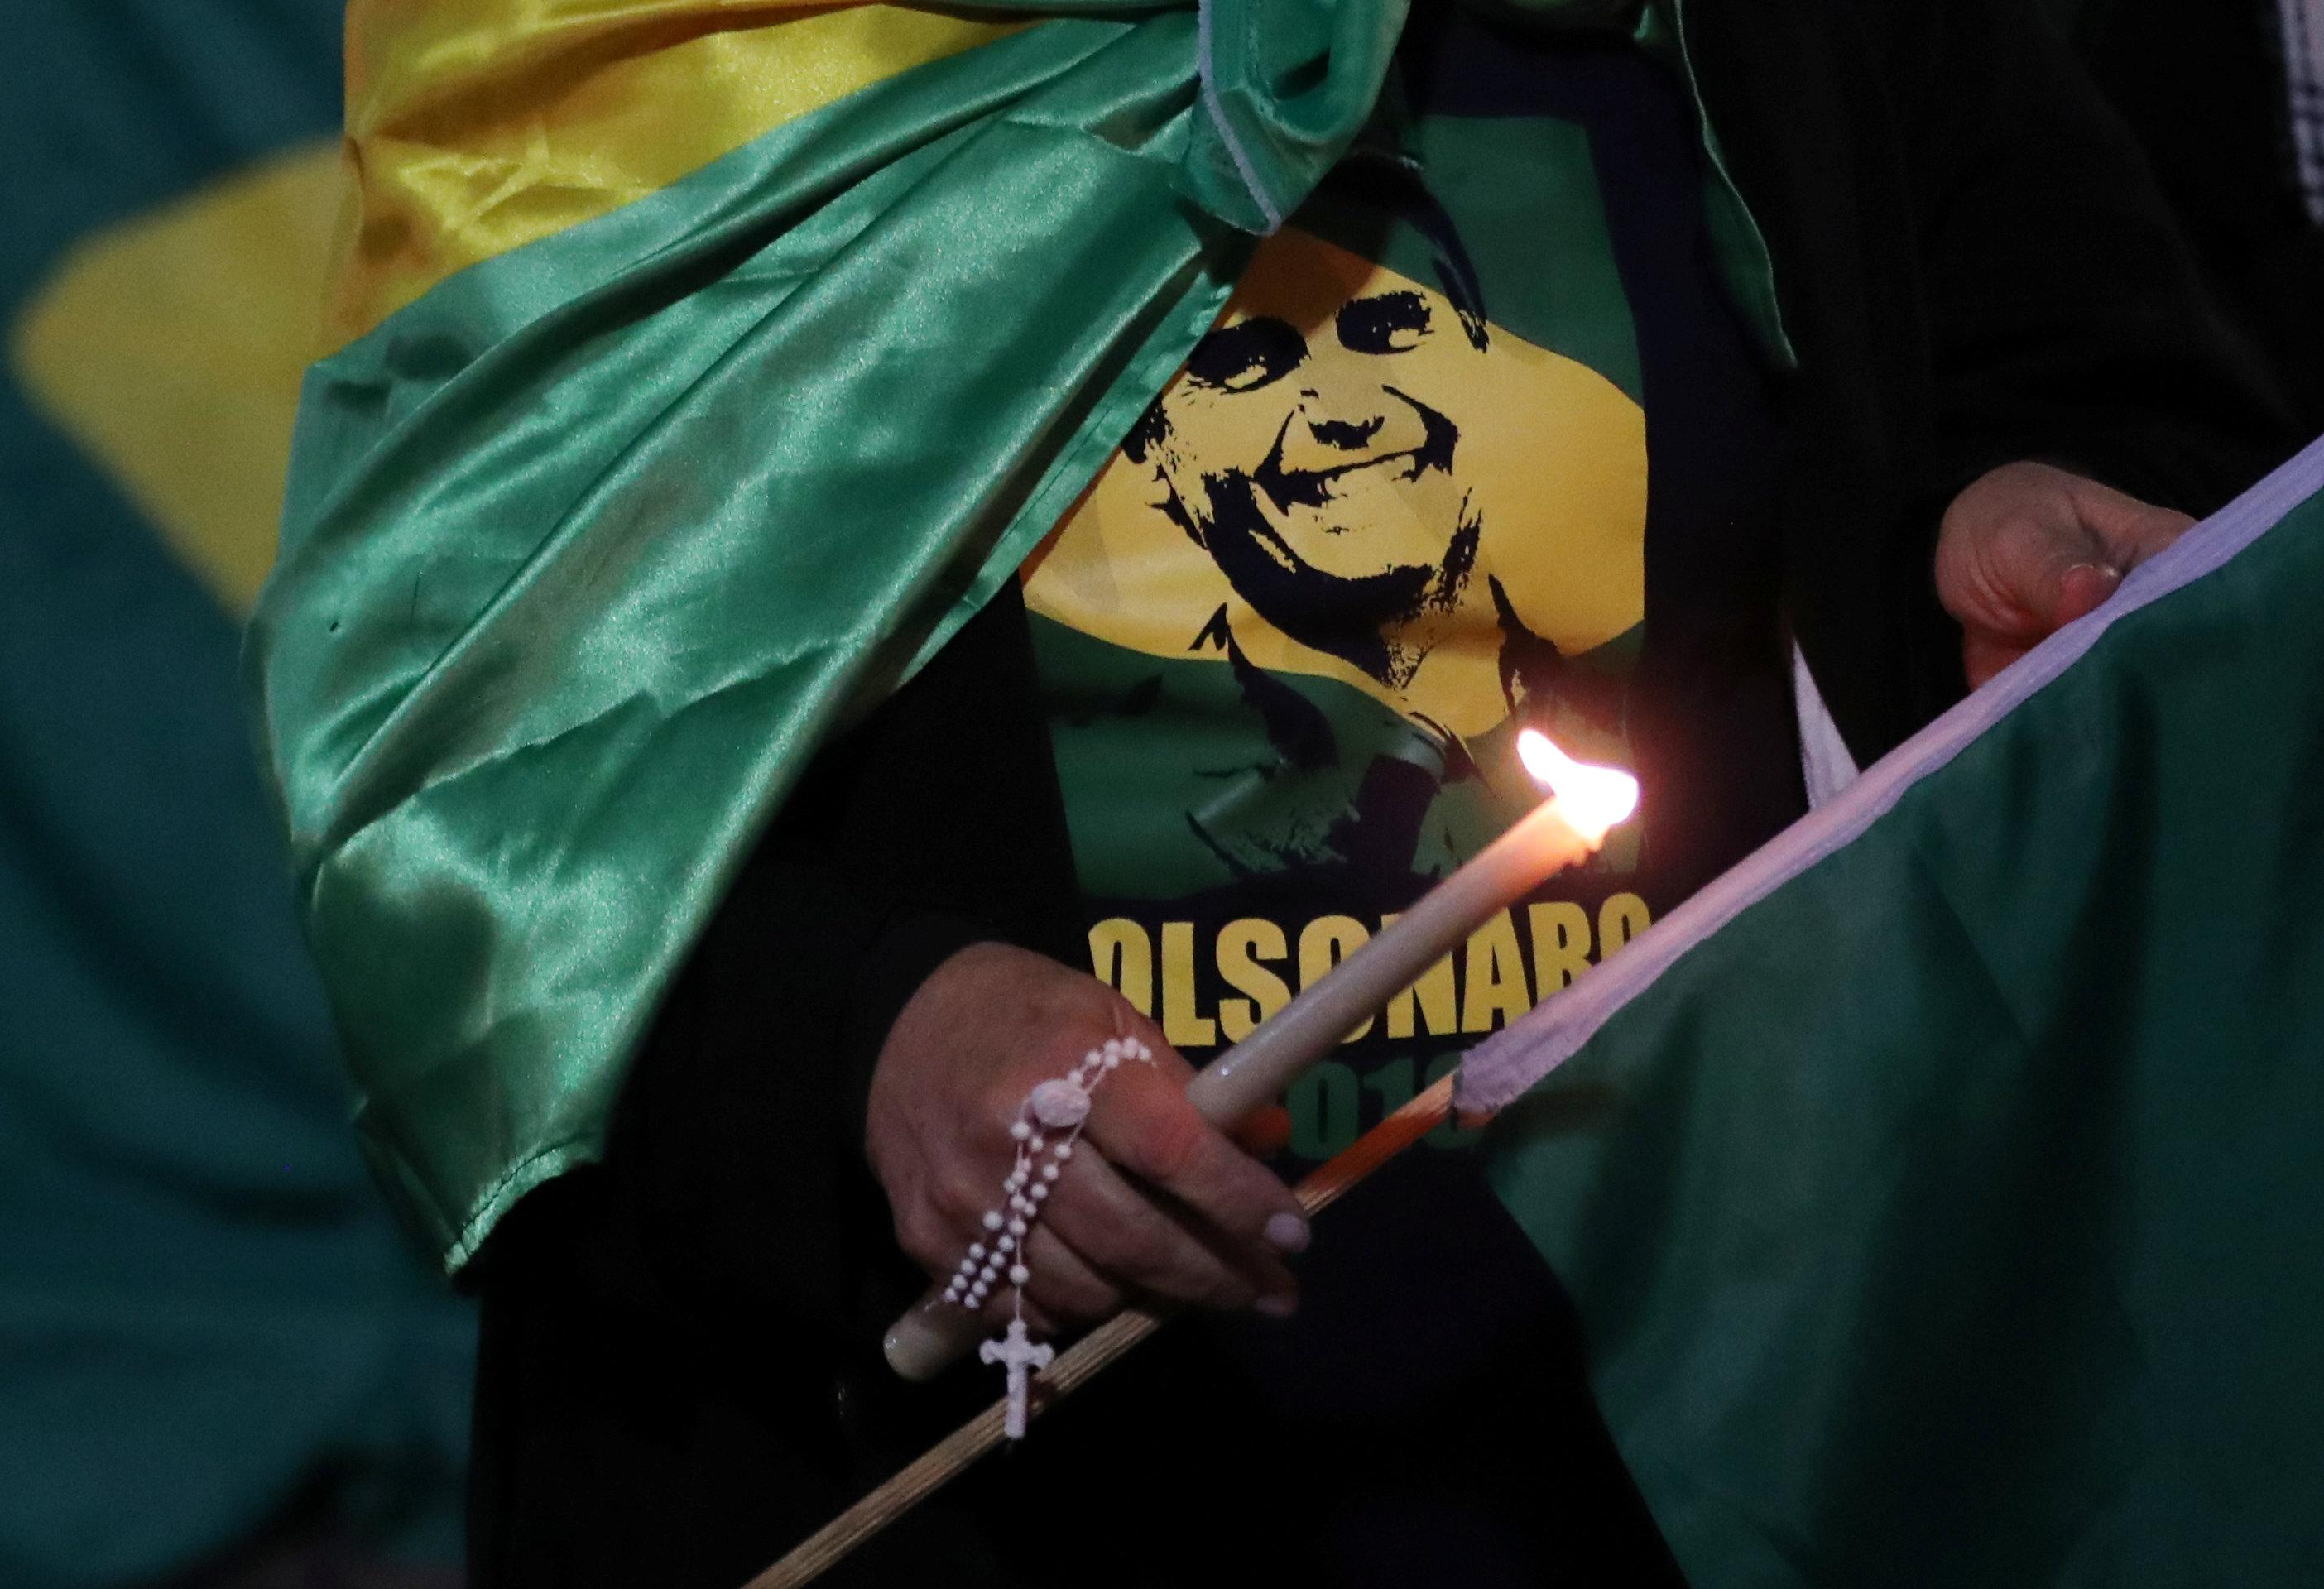 A woman lights a candle for presidential candidate Jair Bolsonaro after he was stabbed by a man in Juiz de Fora at Paulista avenue in Sao Paulo, Brazil September 6, 2018. Paulo Whitaker